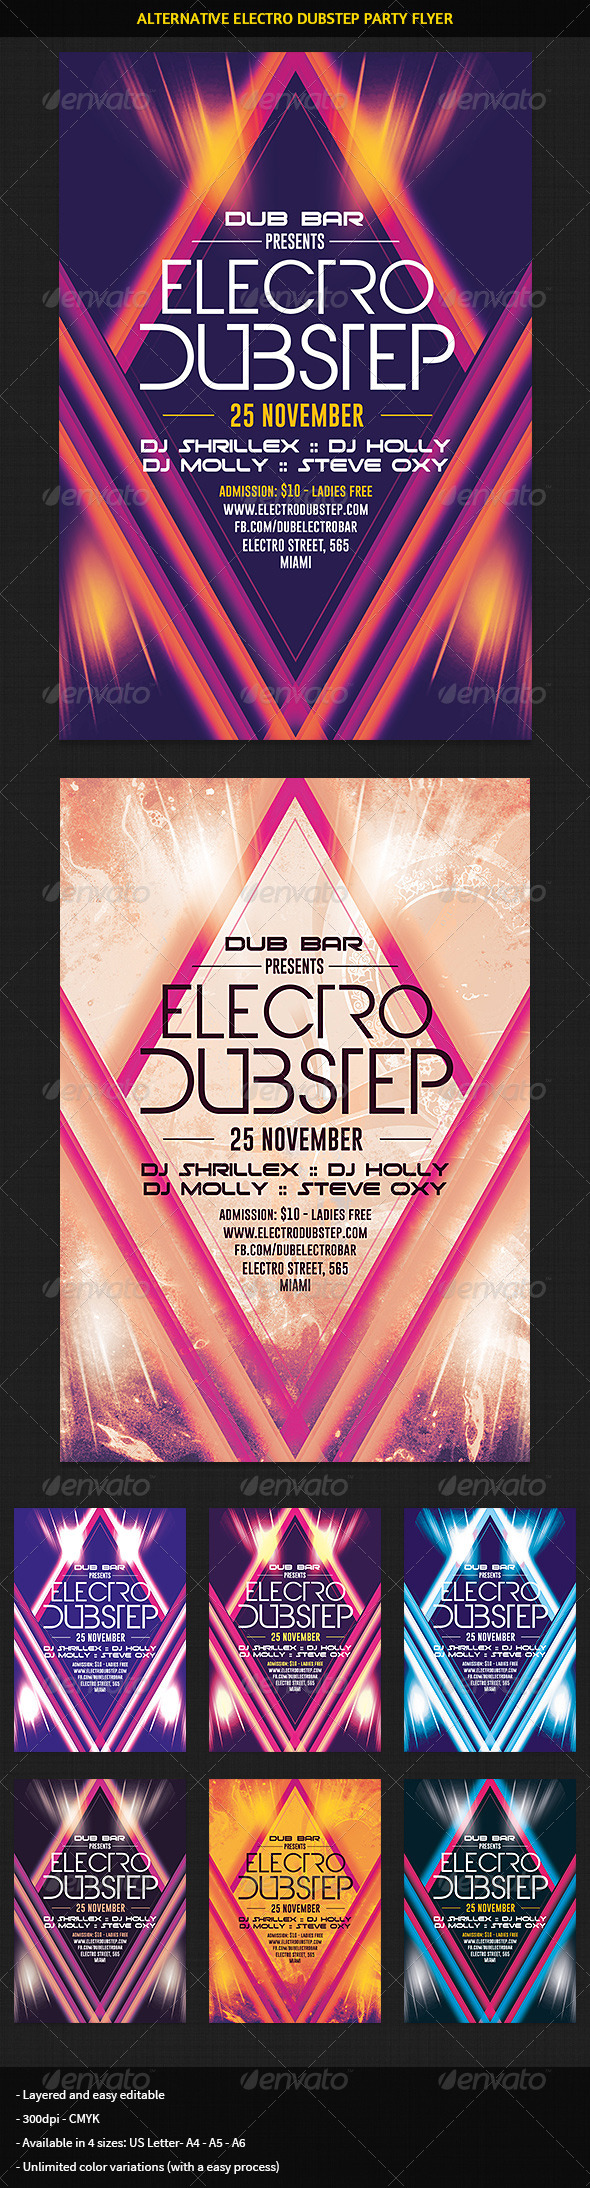 Alternative Electro Minimal Party Flyer - Clubs & Parties Events